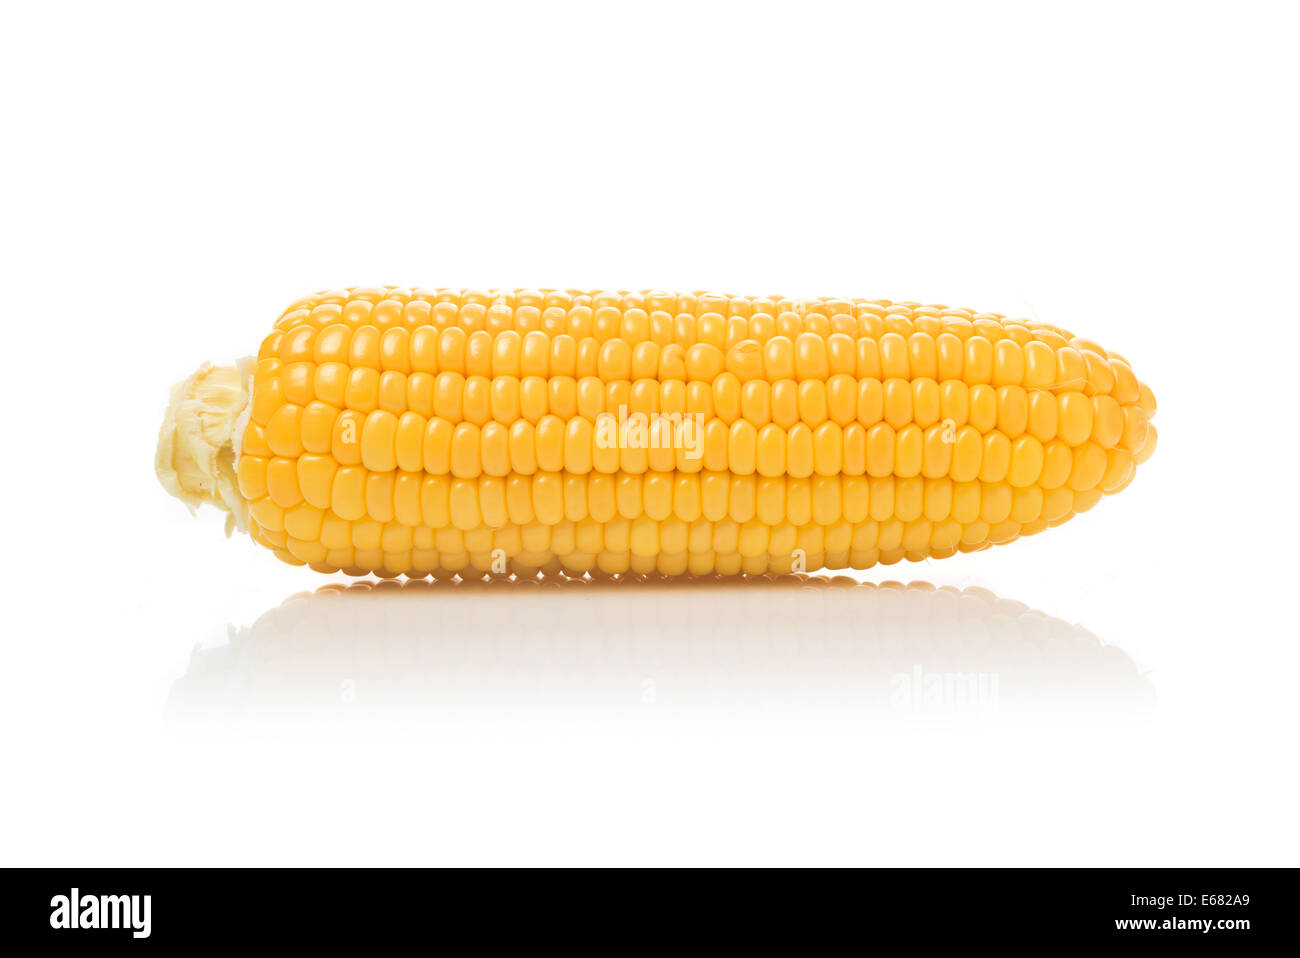 Beautiful fully developed Corn Cob with golden seed over white background. - Stock Image